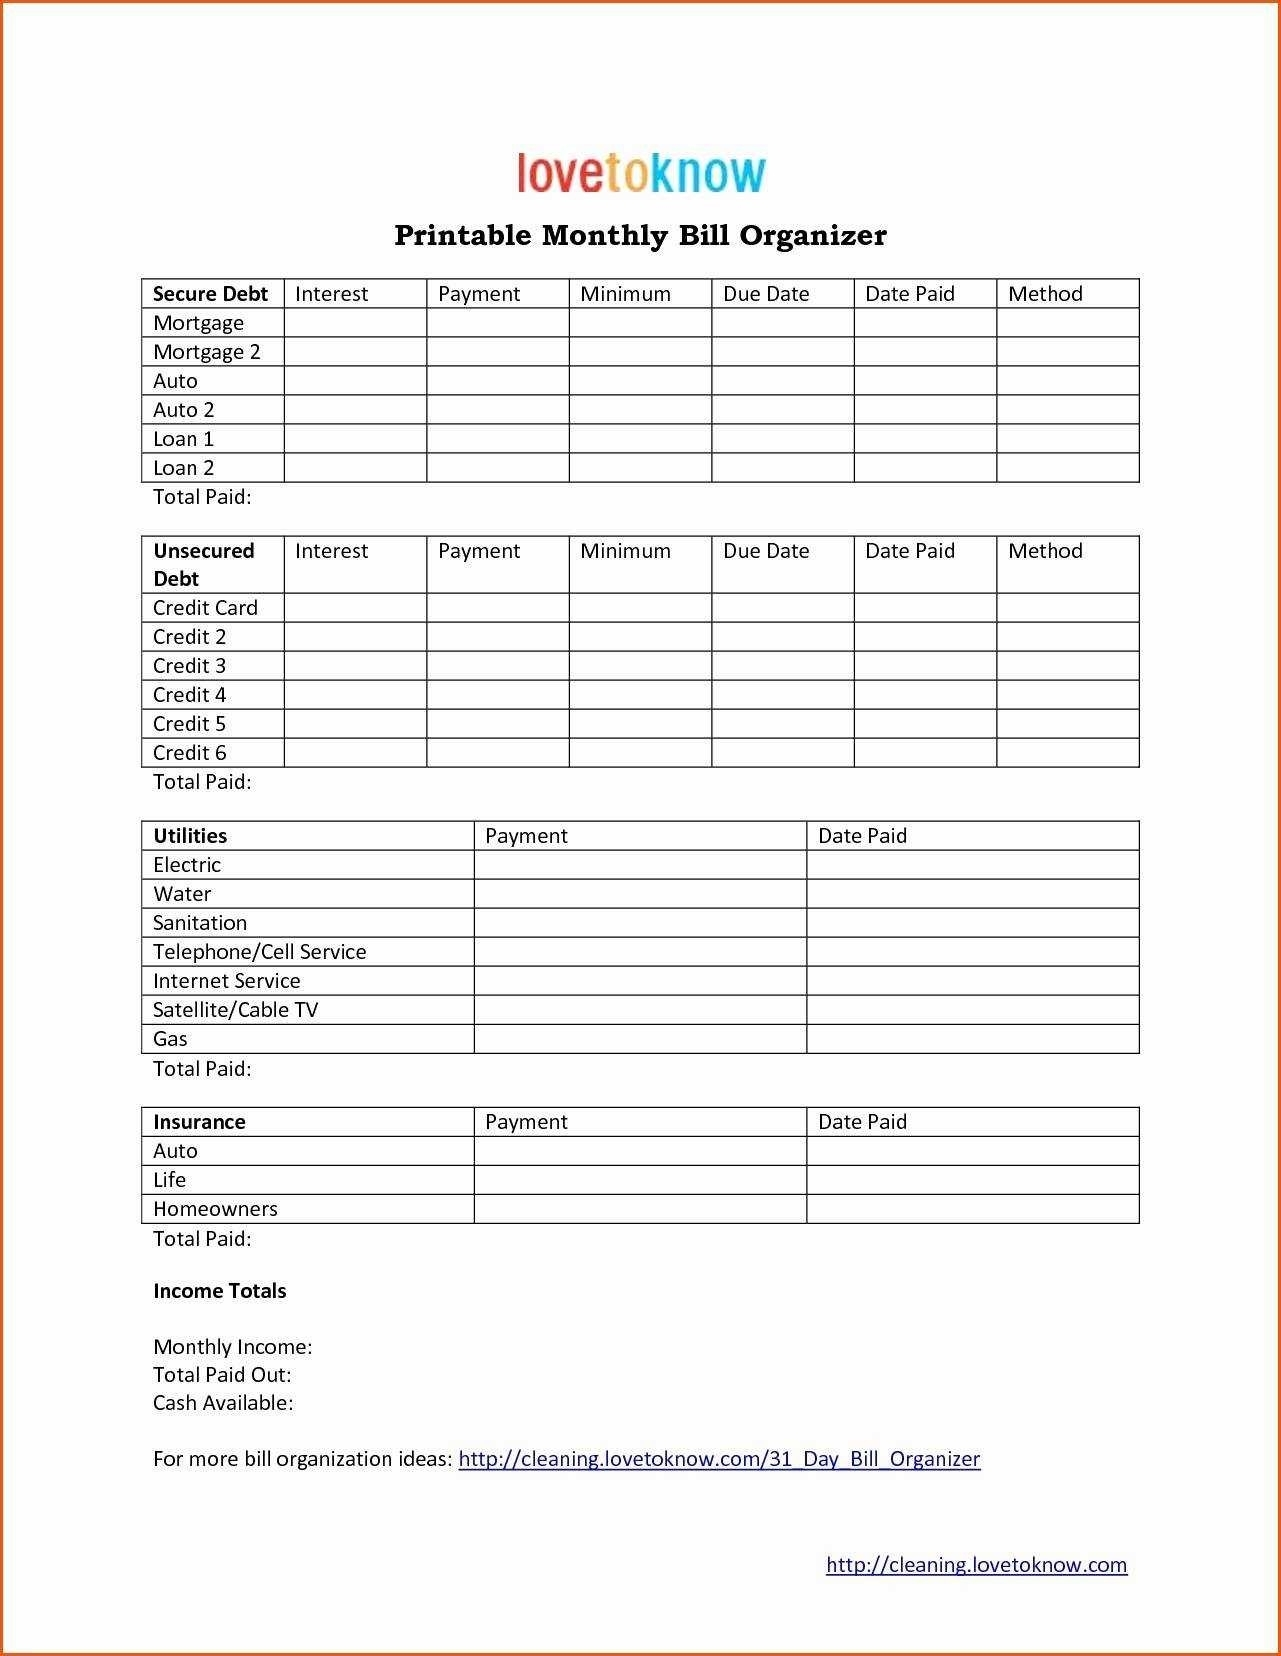 Monthly Profit And Loss Statement Template And Bill Pay Calendar within Free Printable Bill Organizer Monthly Bill Pay